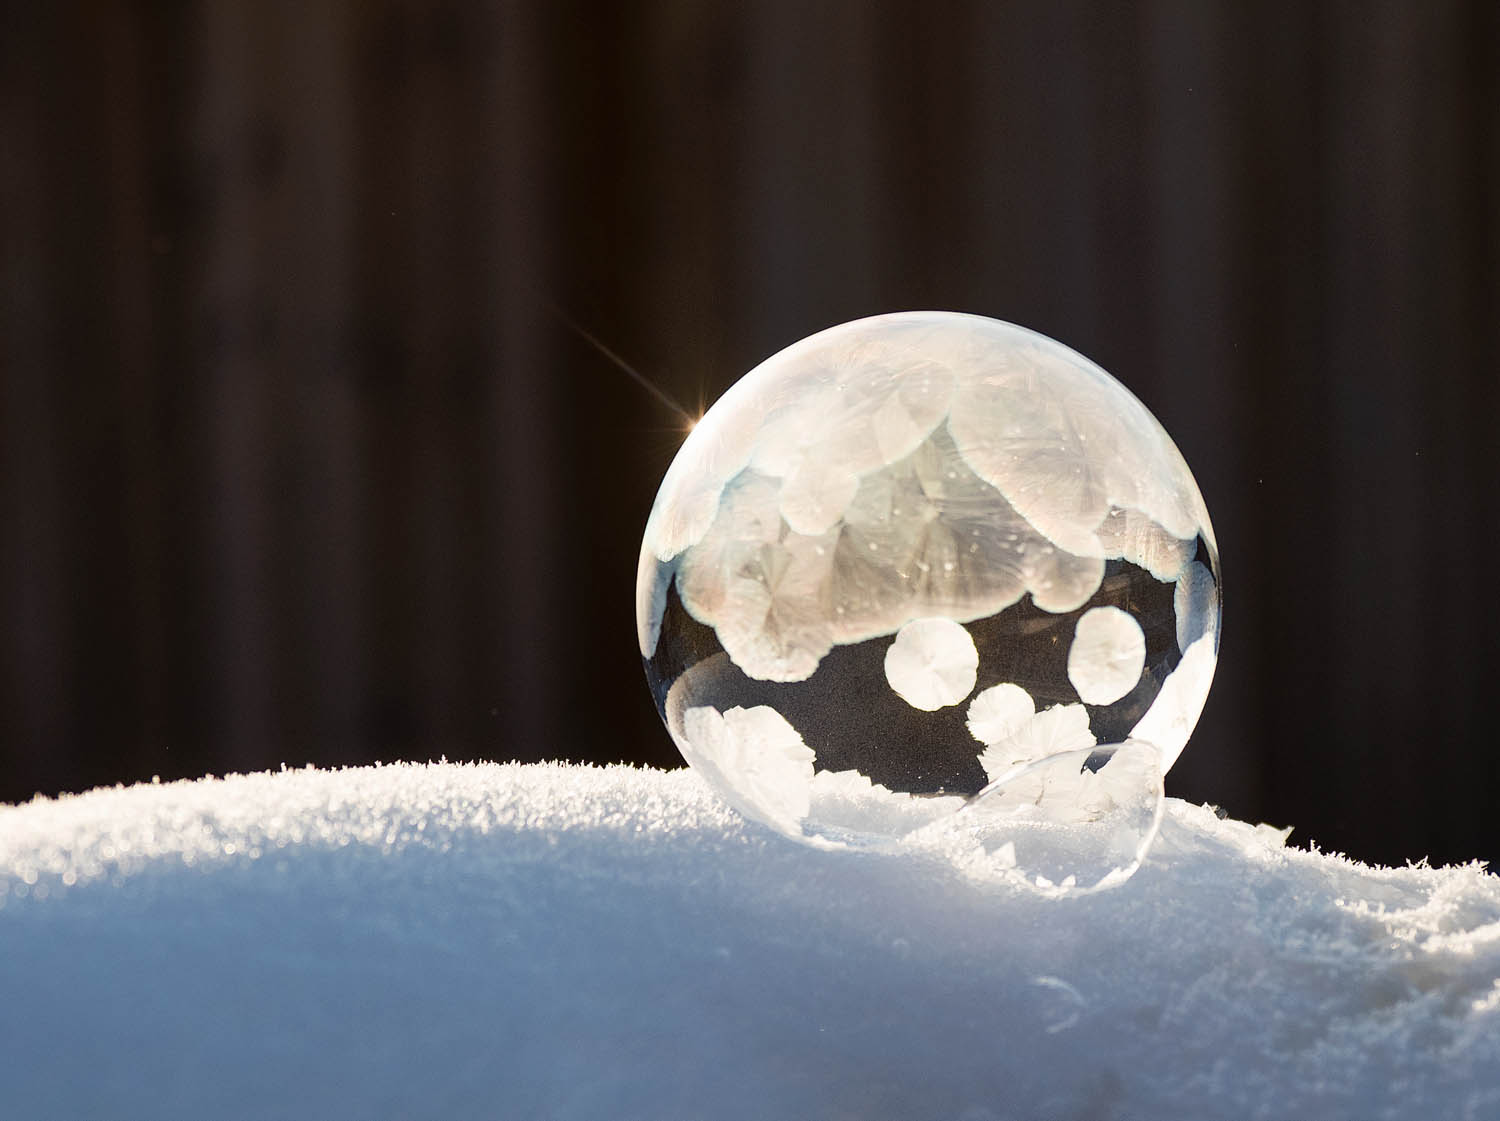 Image: Frozen bubble with a dark background